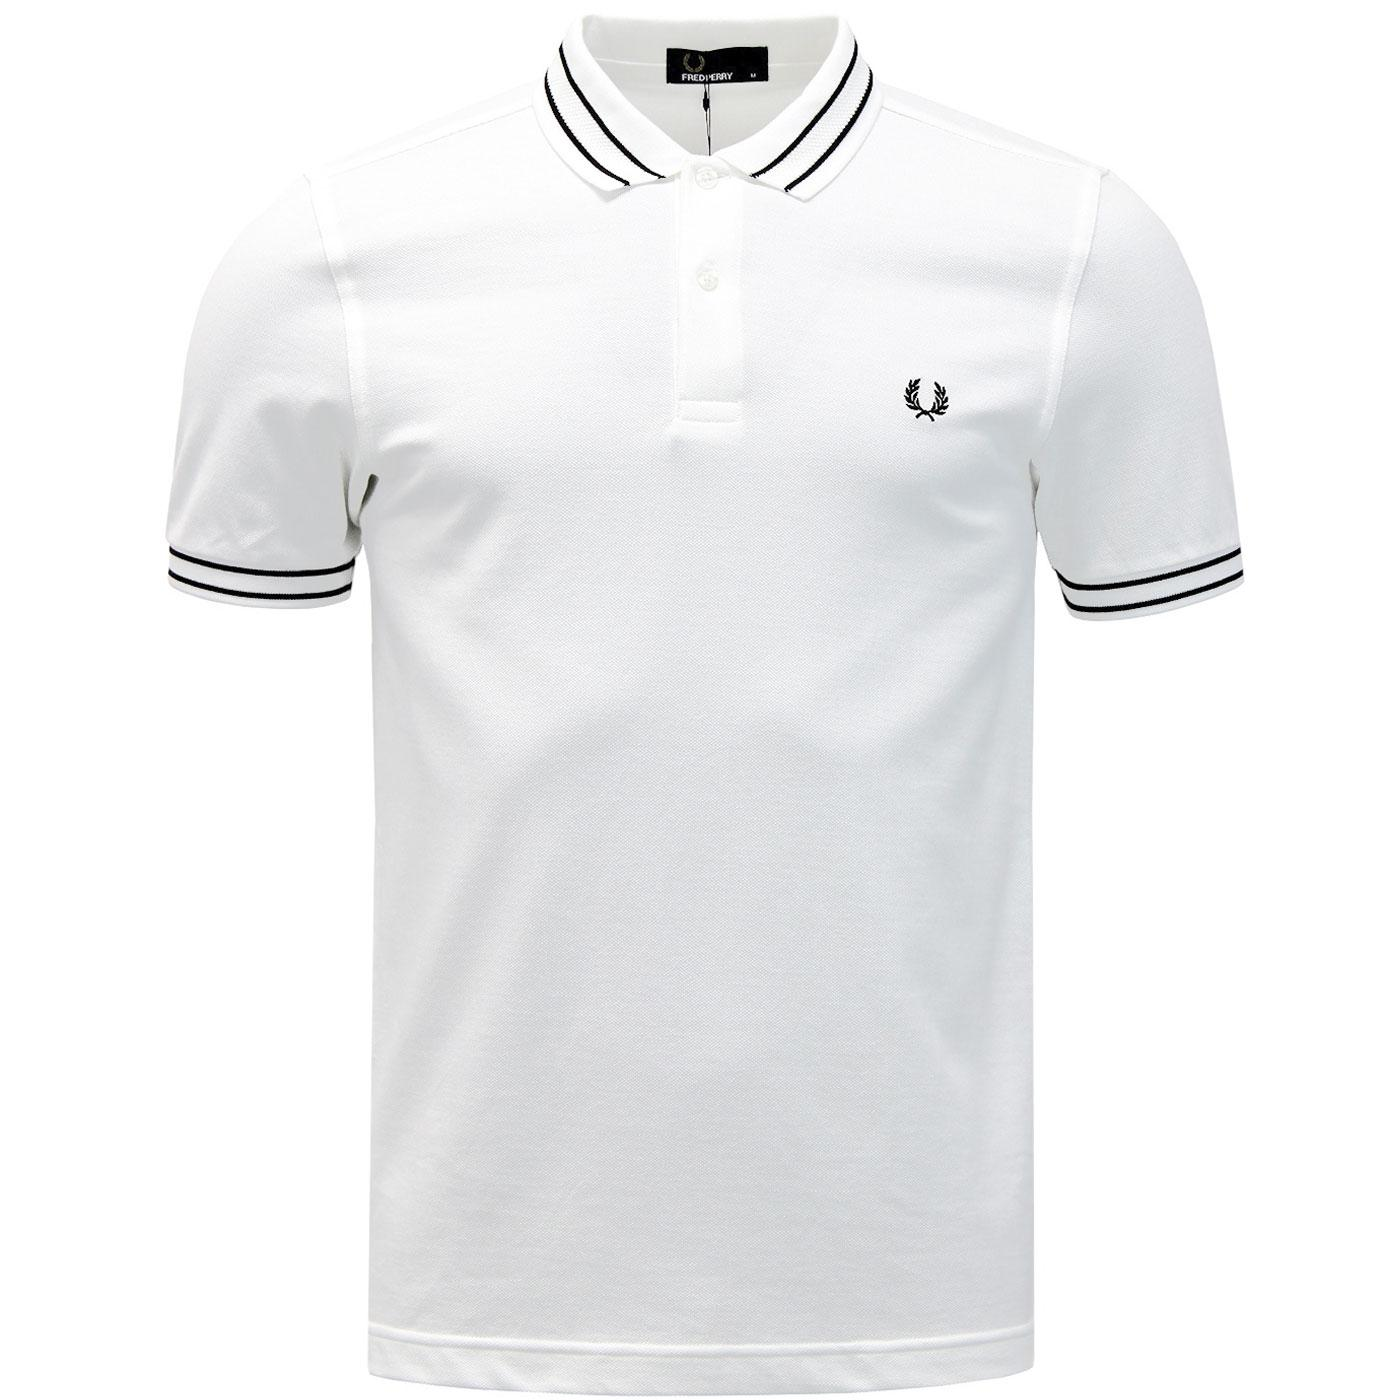 FRED PERRY Tramline Tipped Mod Pique Polo Shirt W